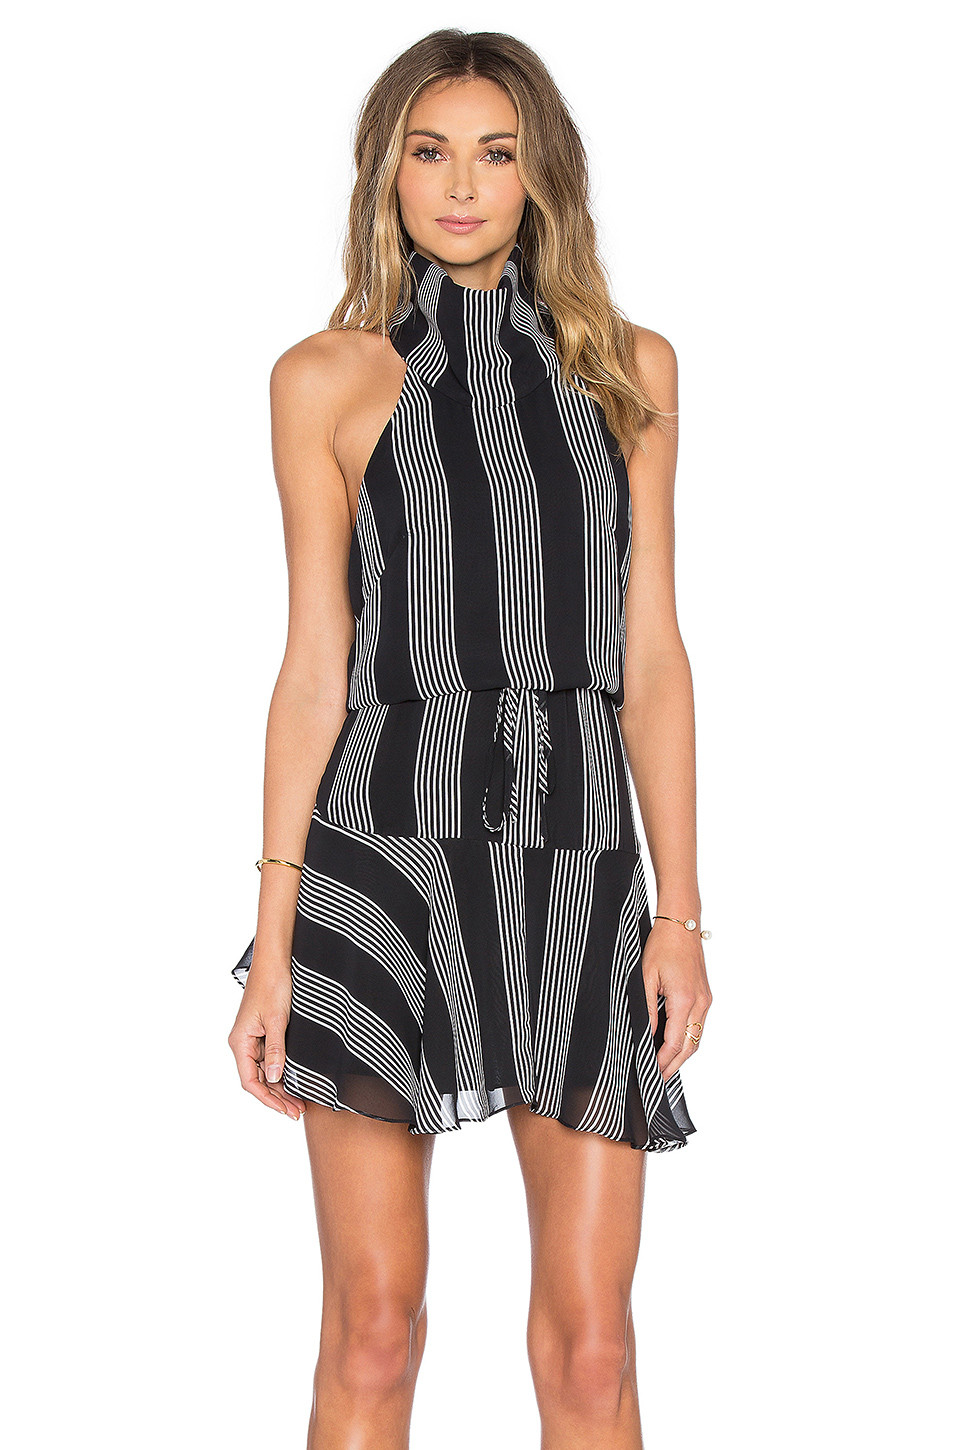 Shona Joy high neck mini dress $279